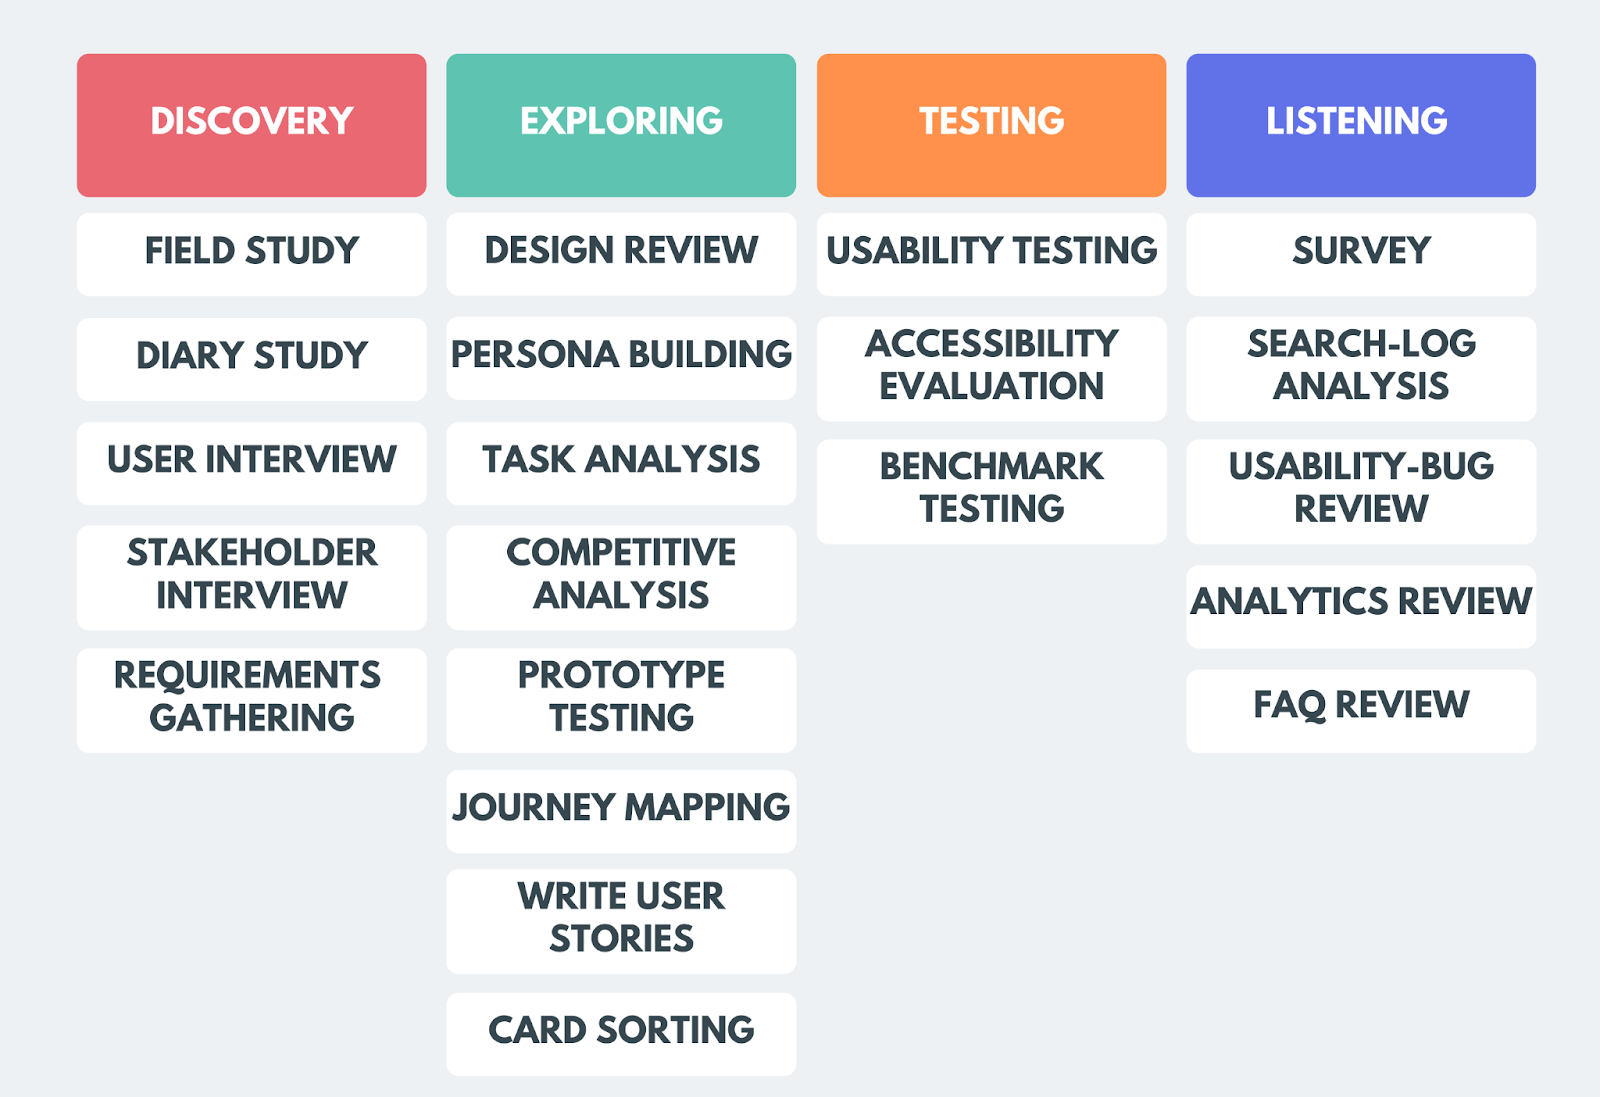 When to use which UX research method